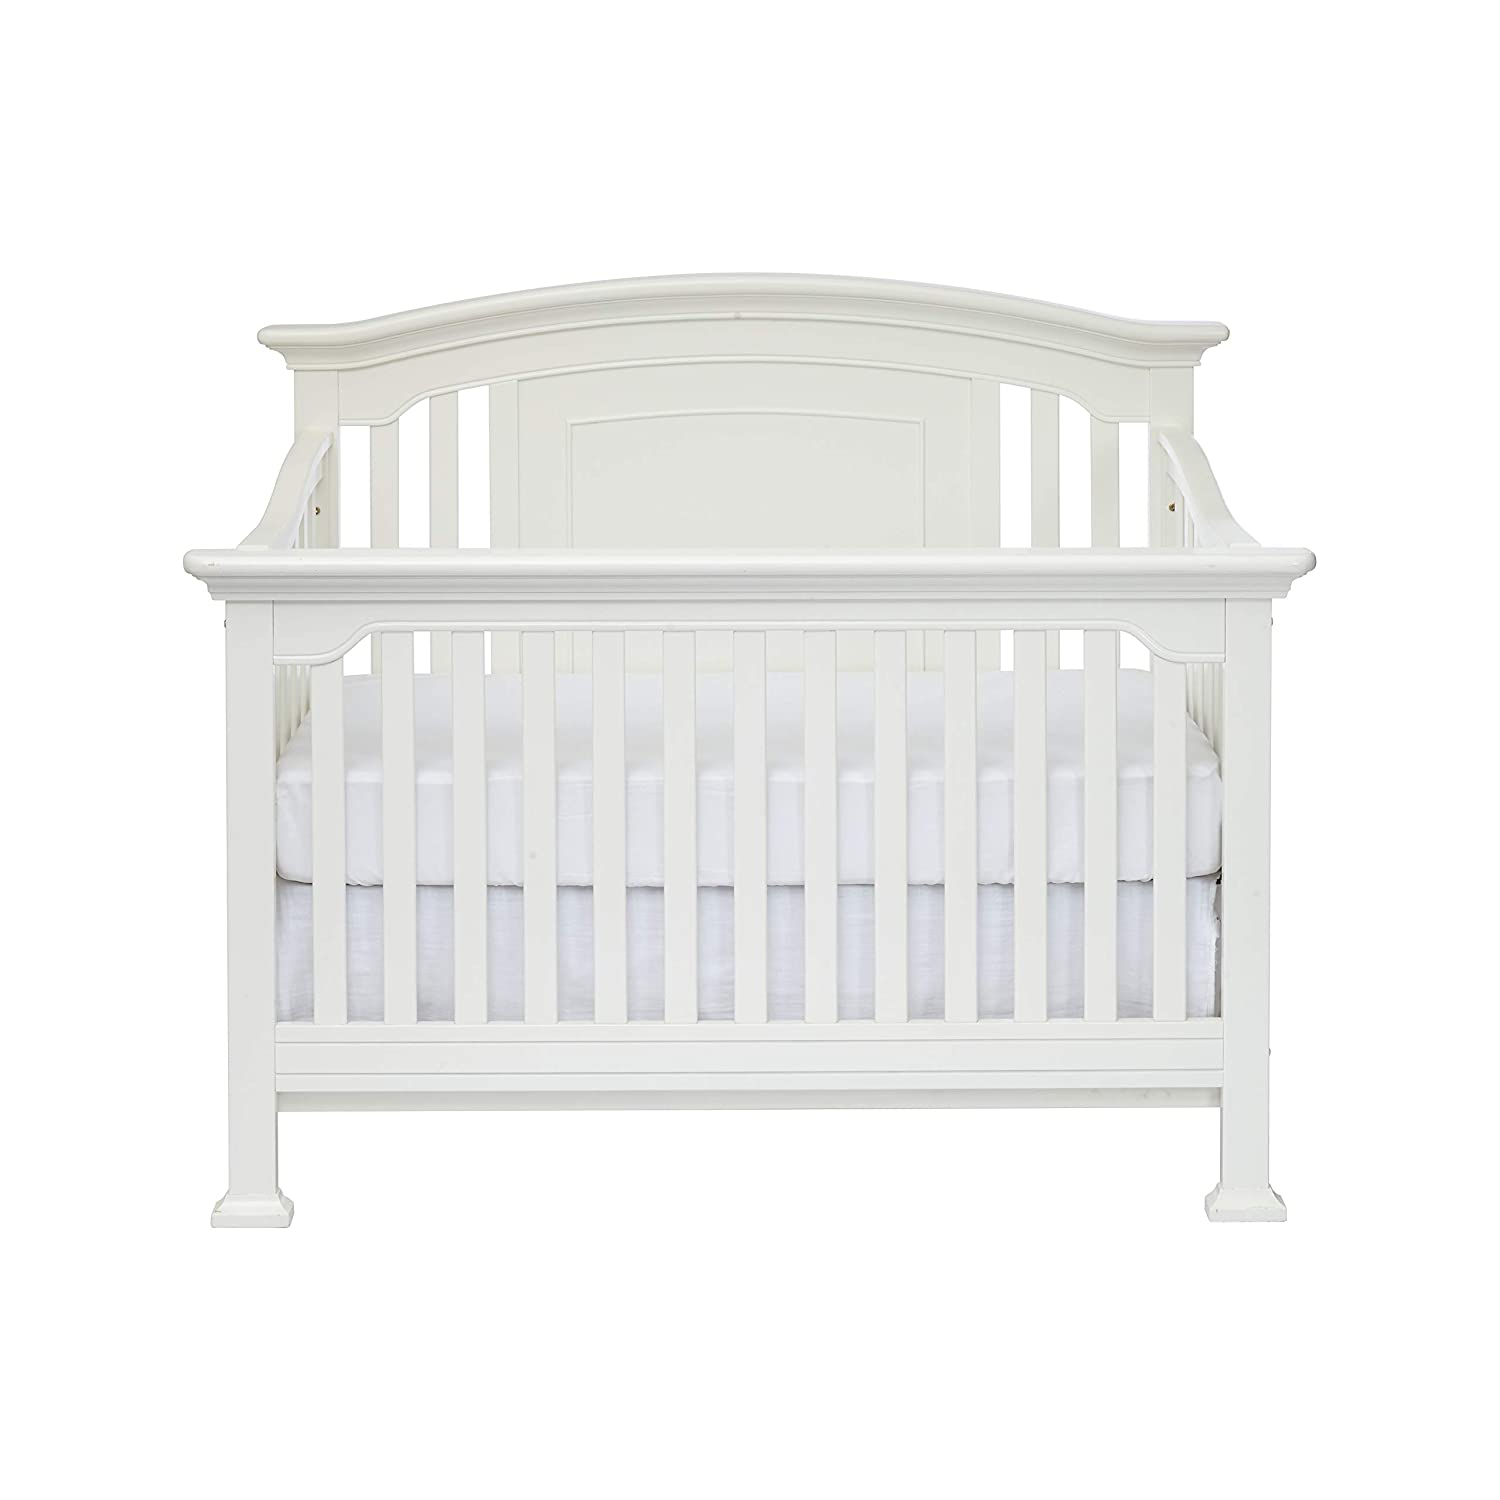 Centennial Medford 4-in-1 Convertible Crib White